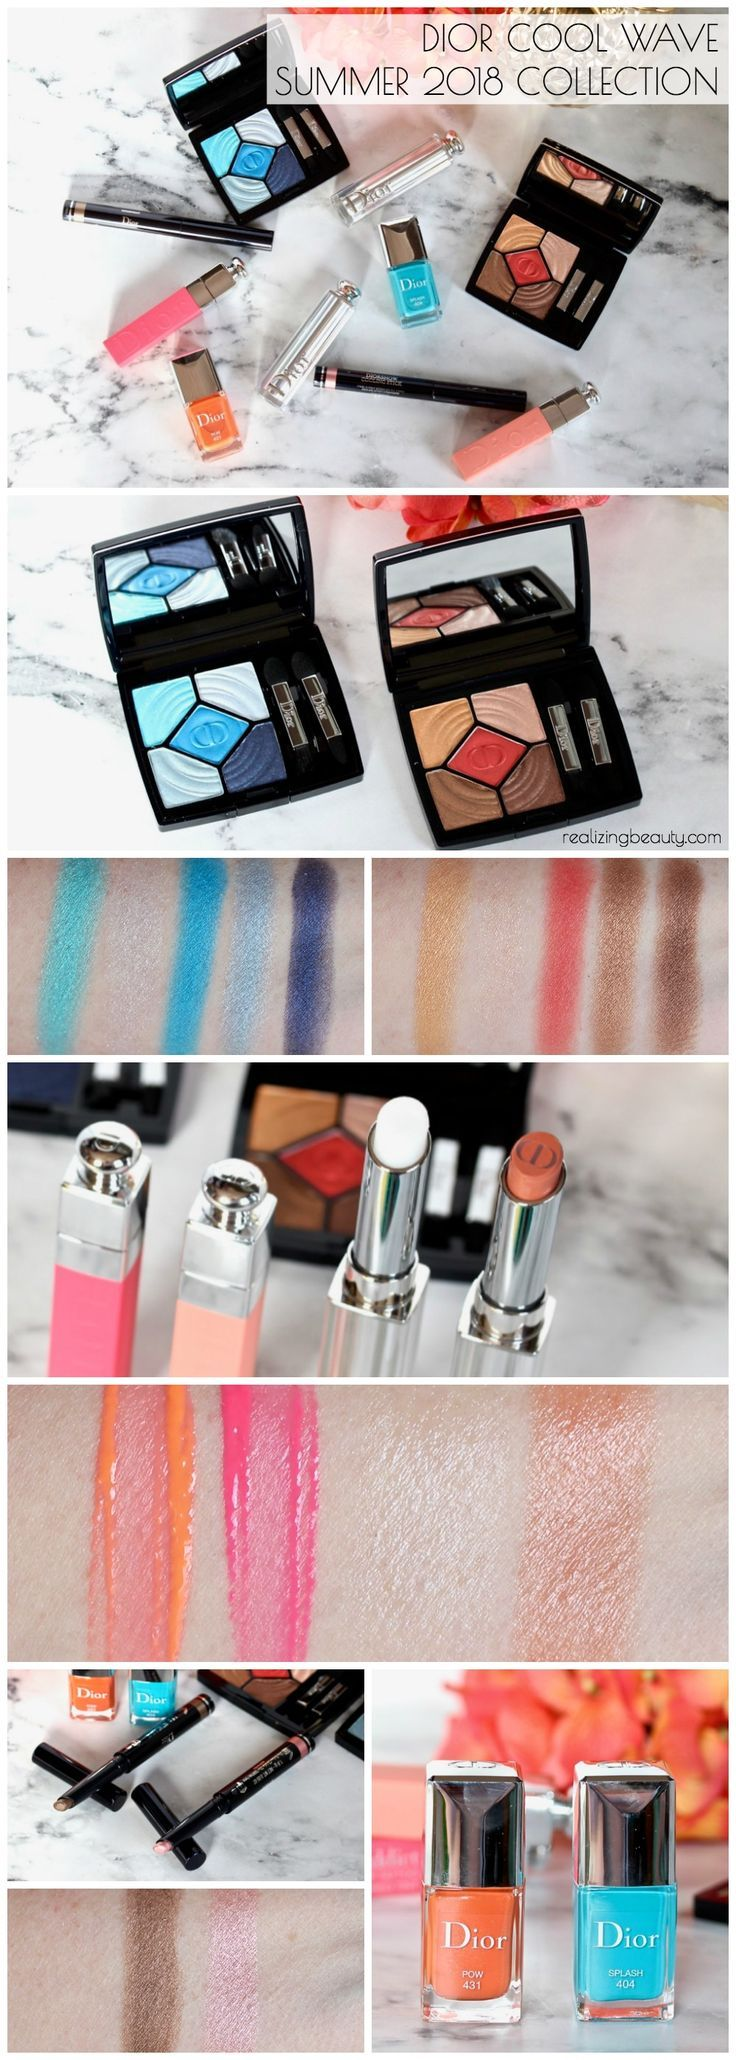 Dior Cool Wave Summer 2018 Collection Review and Swatches • Realizing Beauty